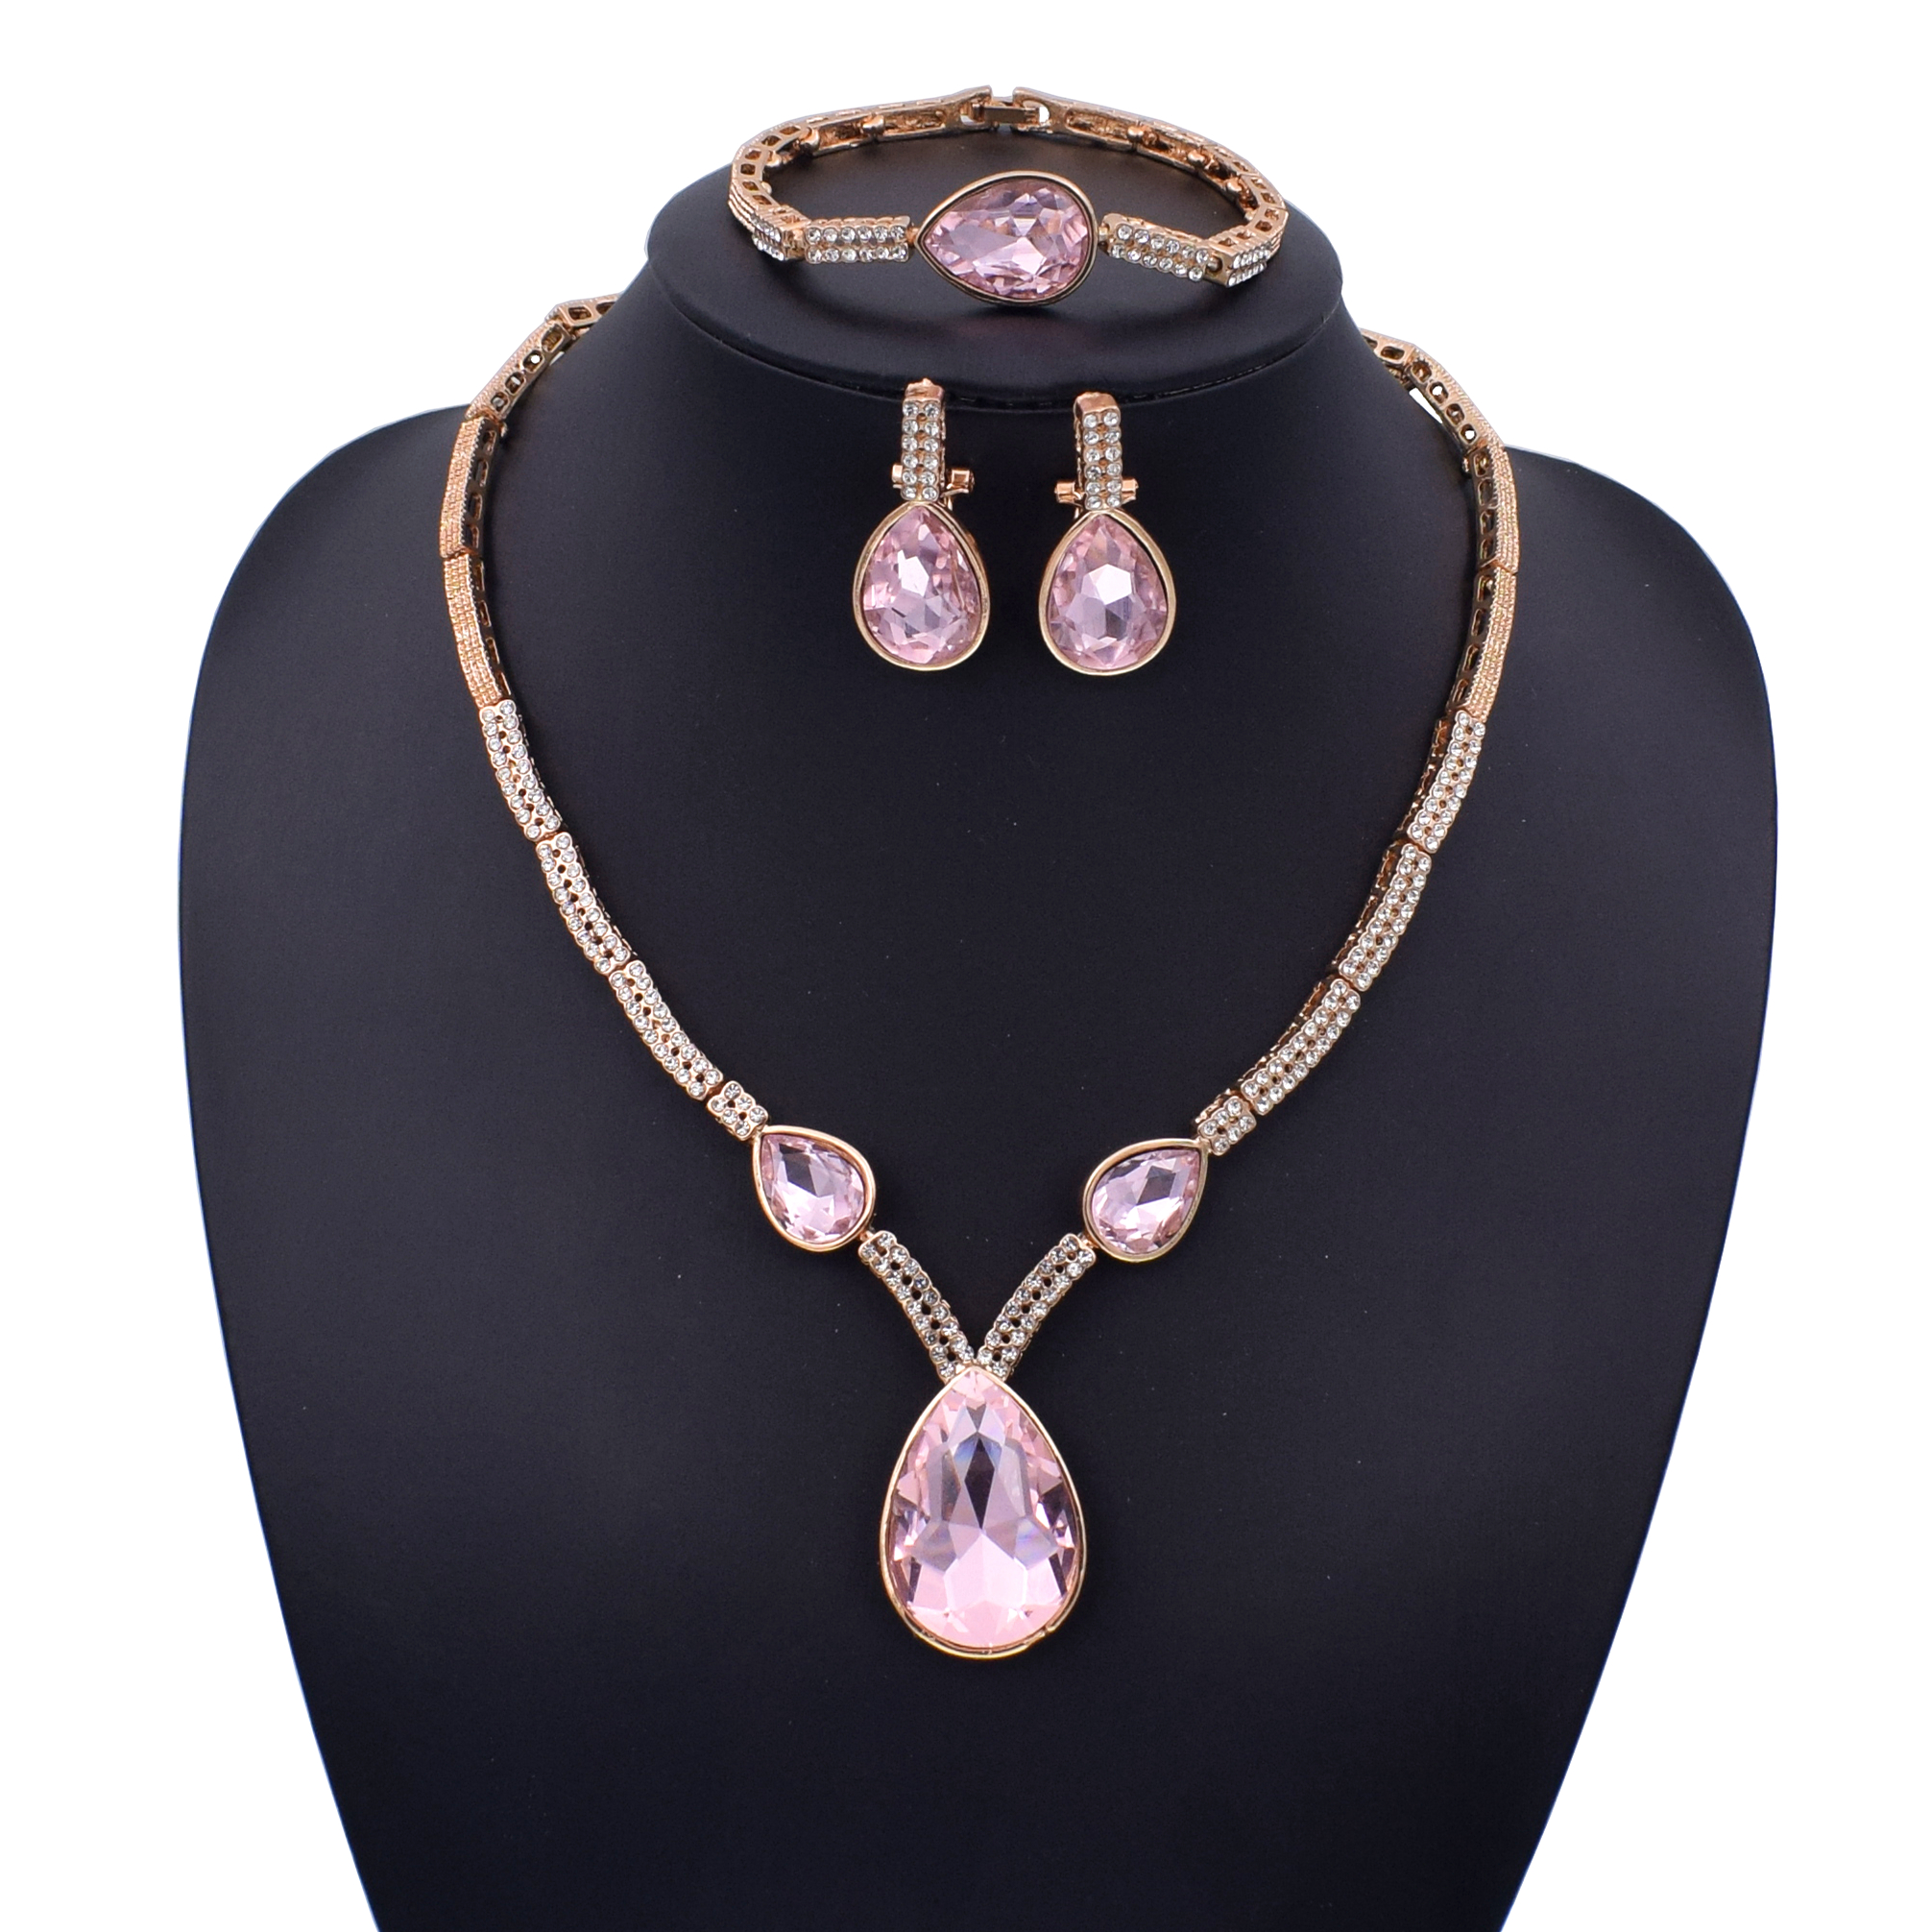 African Beads Jewelry Set Gold Color Bridal Jewelry Sets For Women Indian Wedding Jewelry Necklace Earrings Set Resizable